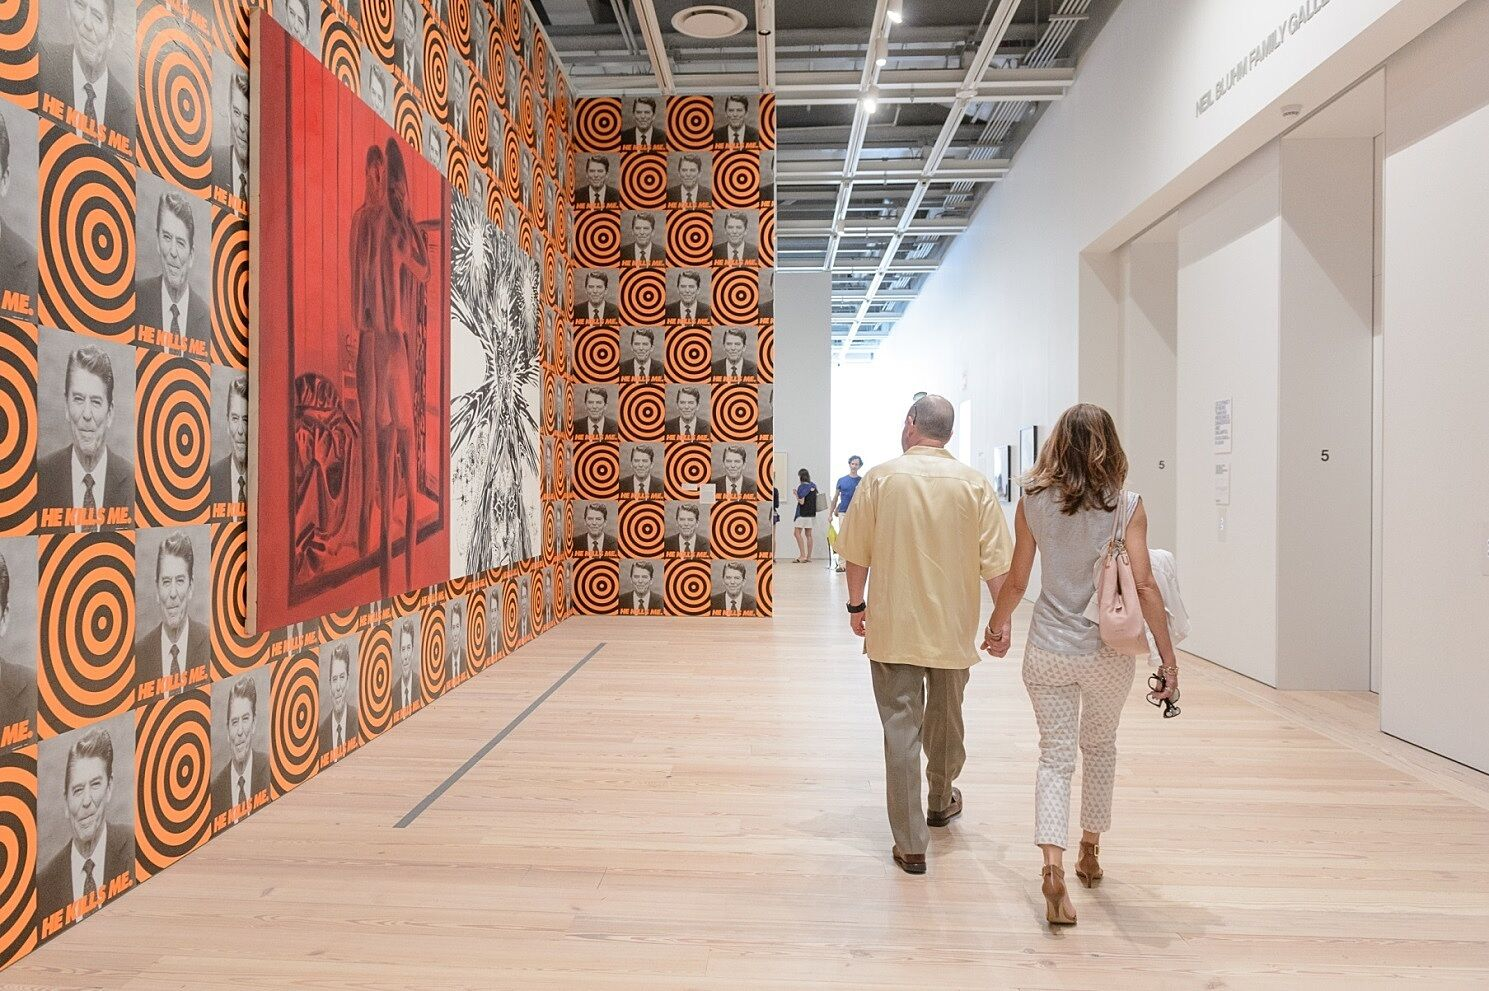 Two adults walks through a gallery during the event.